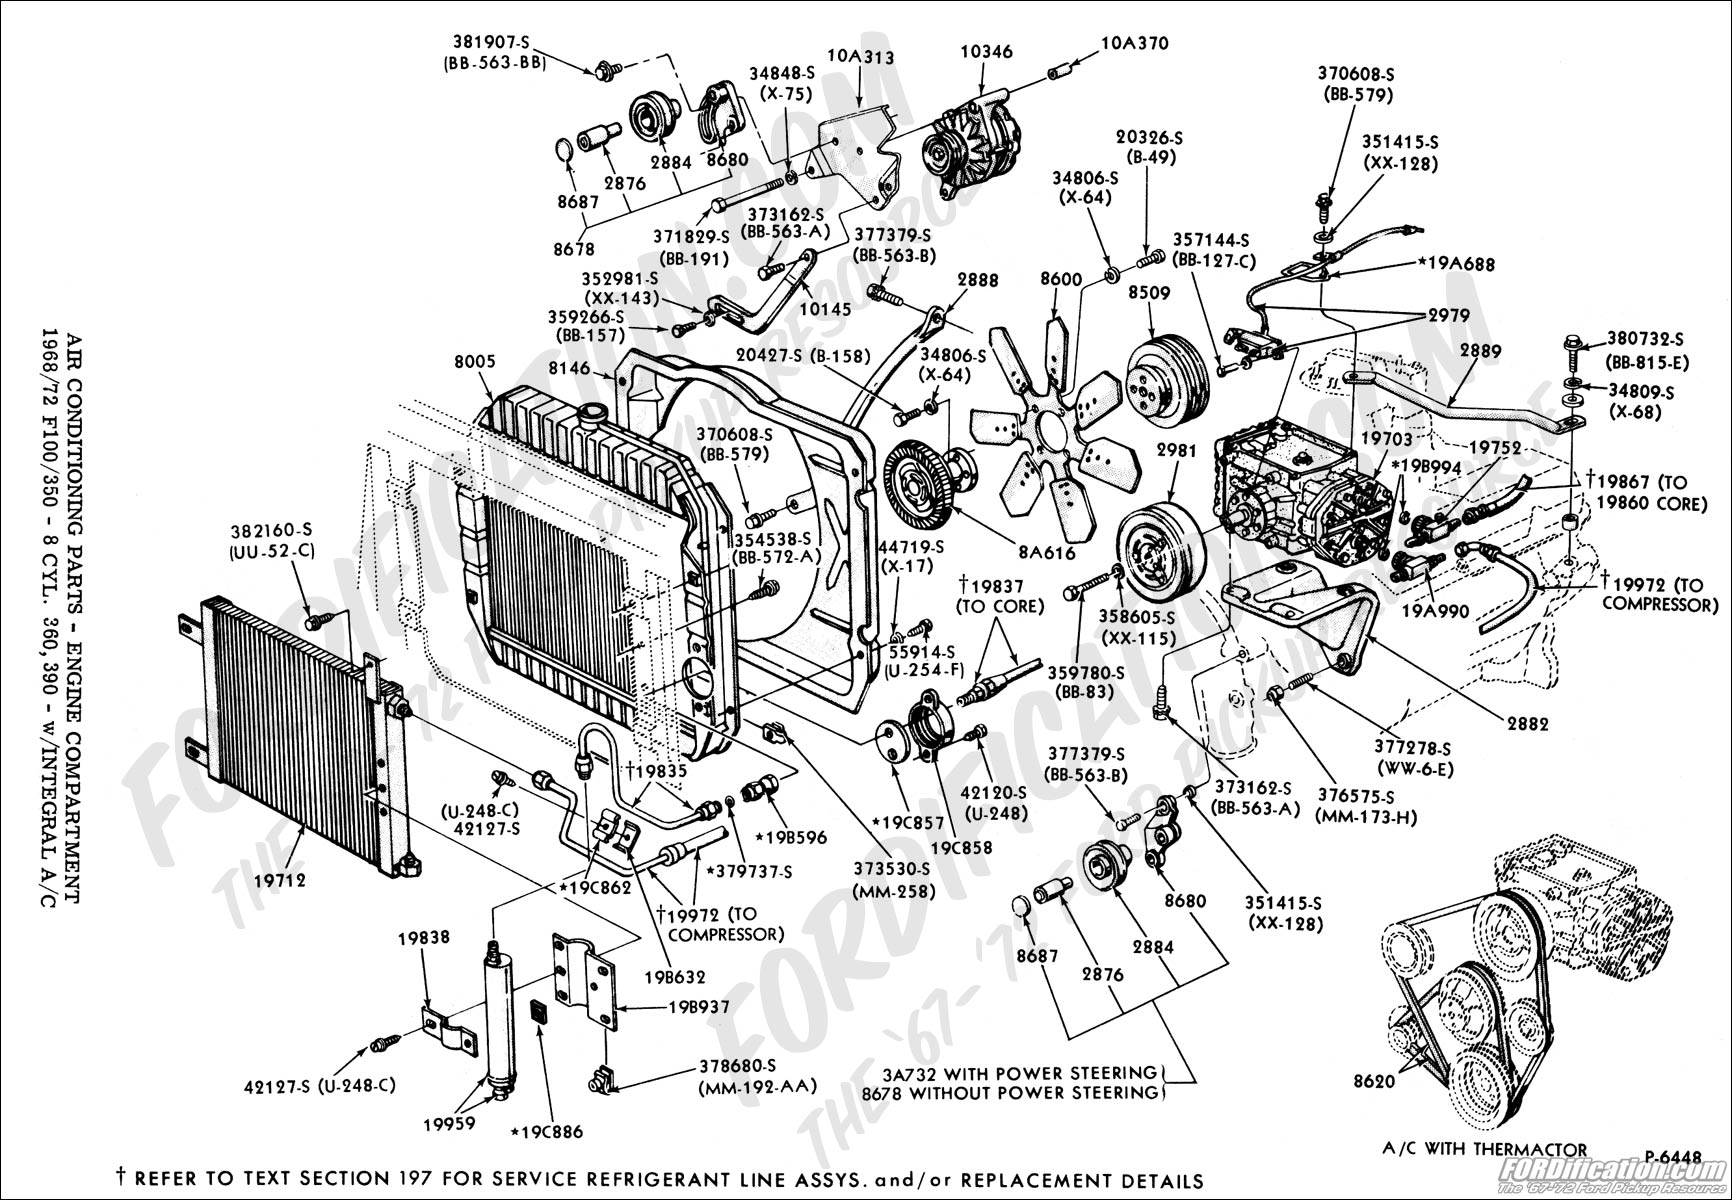 1997 ford f250 parts diagram 2008 chevy impala radio wiring truck technical drawings and schematics section f